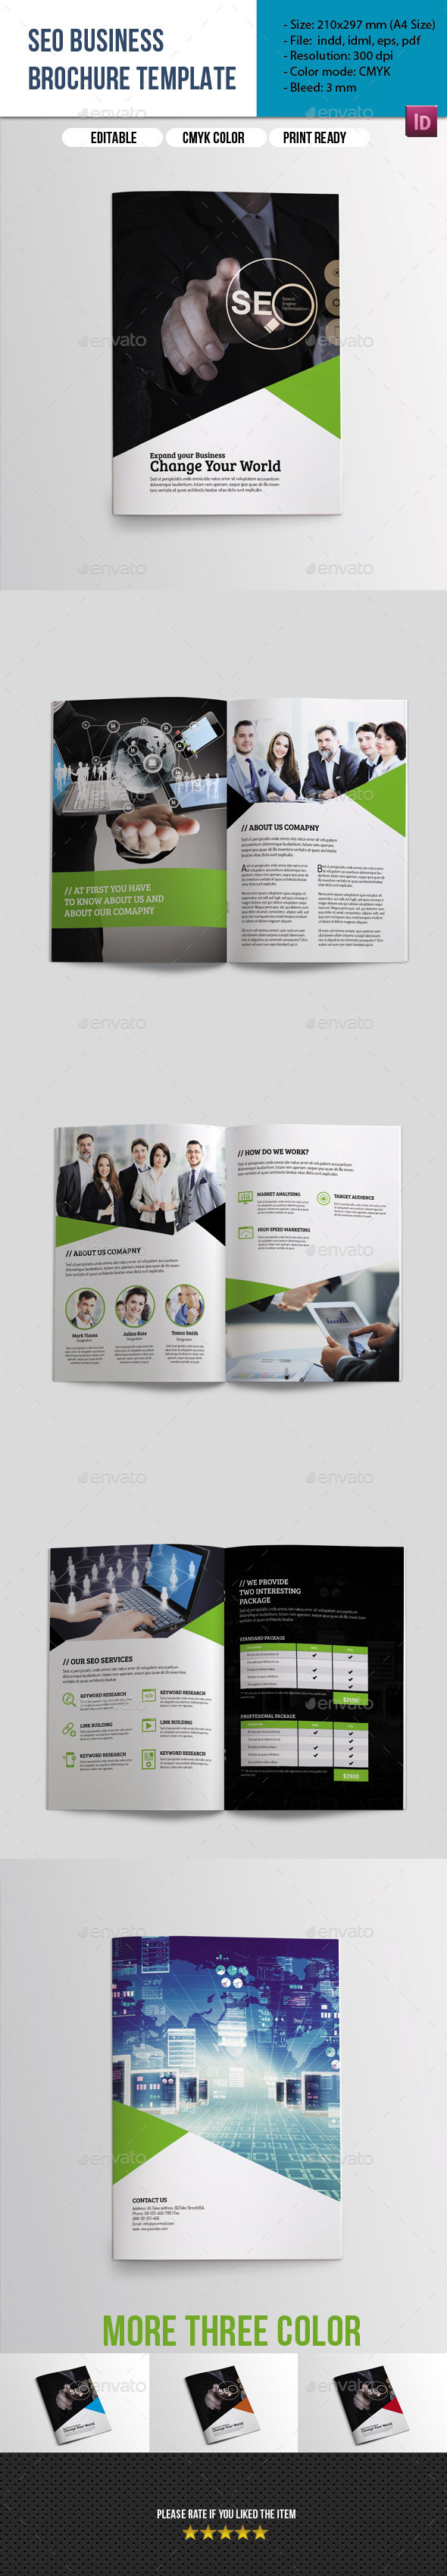 GraphicRiver 8 Pages SEO Business Brochure-Indesign Templae 9694430